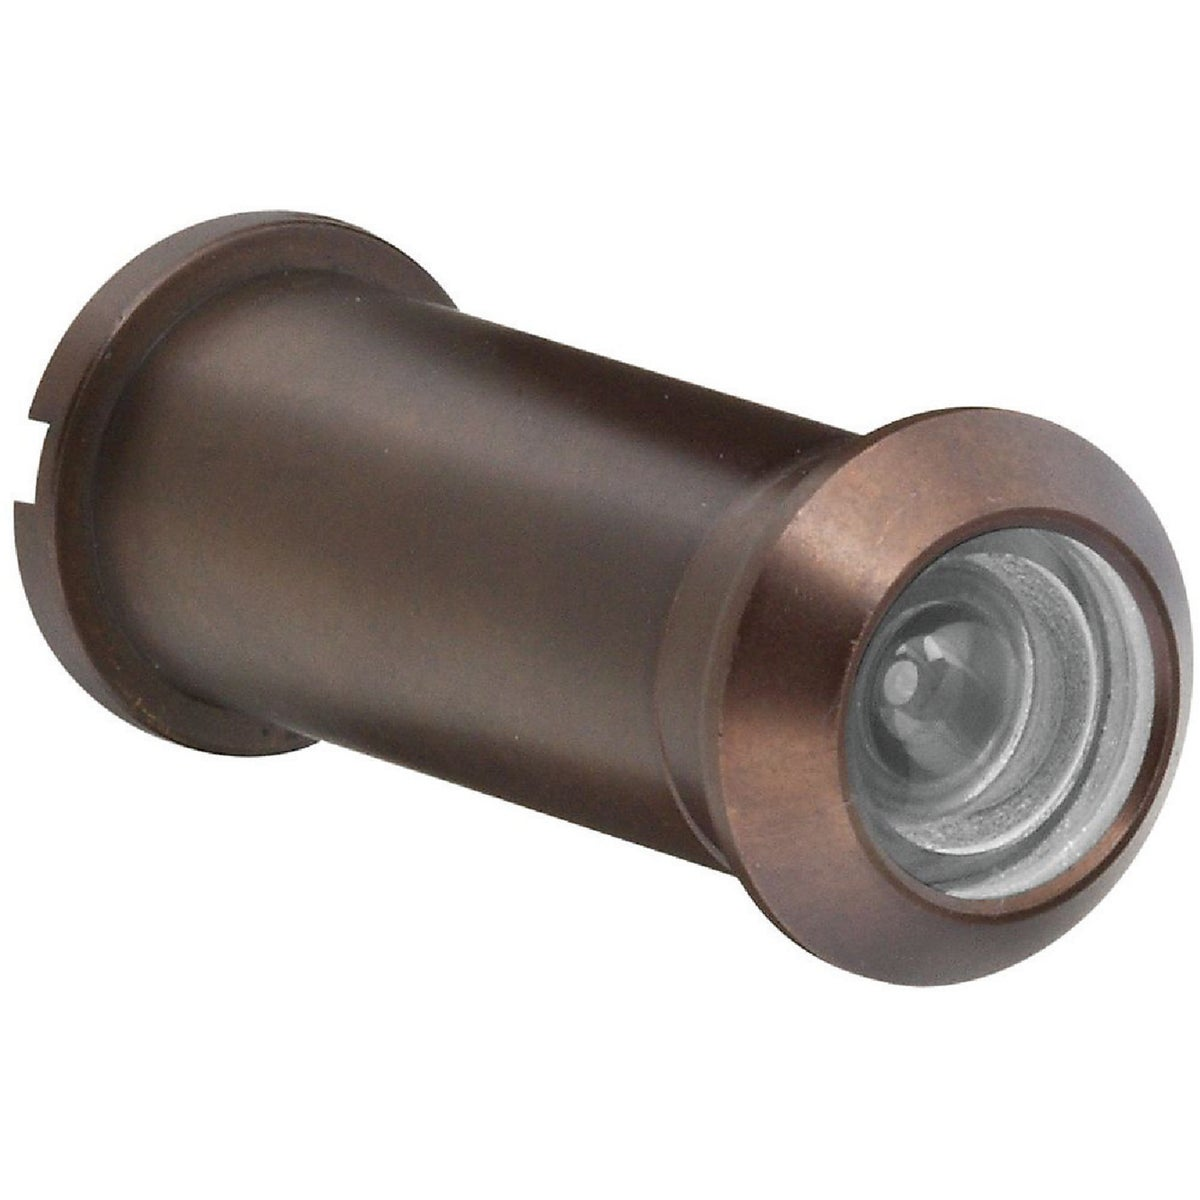 ABZ DOOR VIEWER - N336081 by National Mfg Co